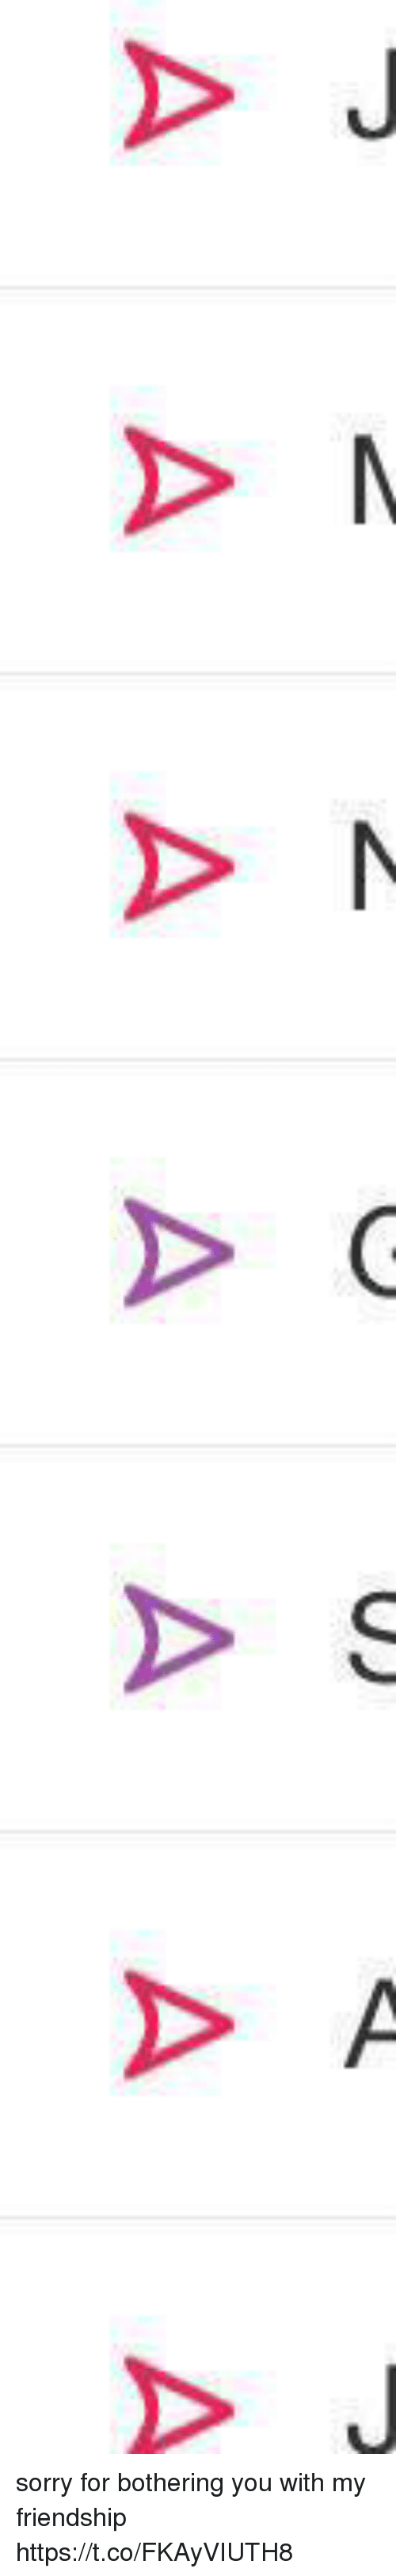 Sorry, Girl Memes, and Friendship: sorry for bothering you with my friendship https://t.co/FKAyVIUTH8